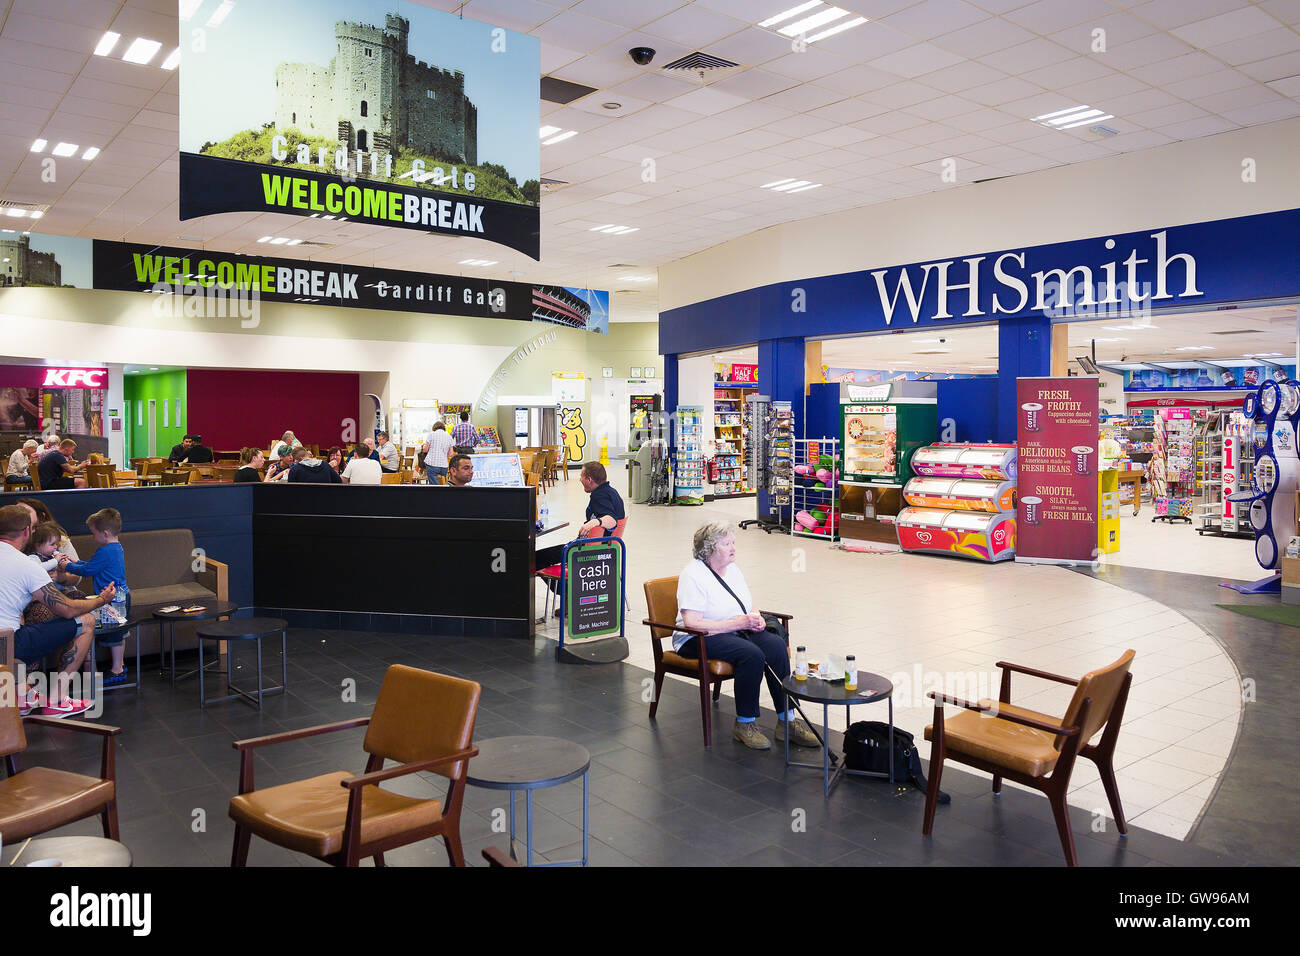 Inside Cardiff Gate Welcom Break service station on the motorway M4 in South Wales UK Stock Photo